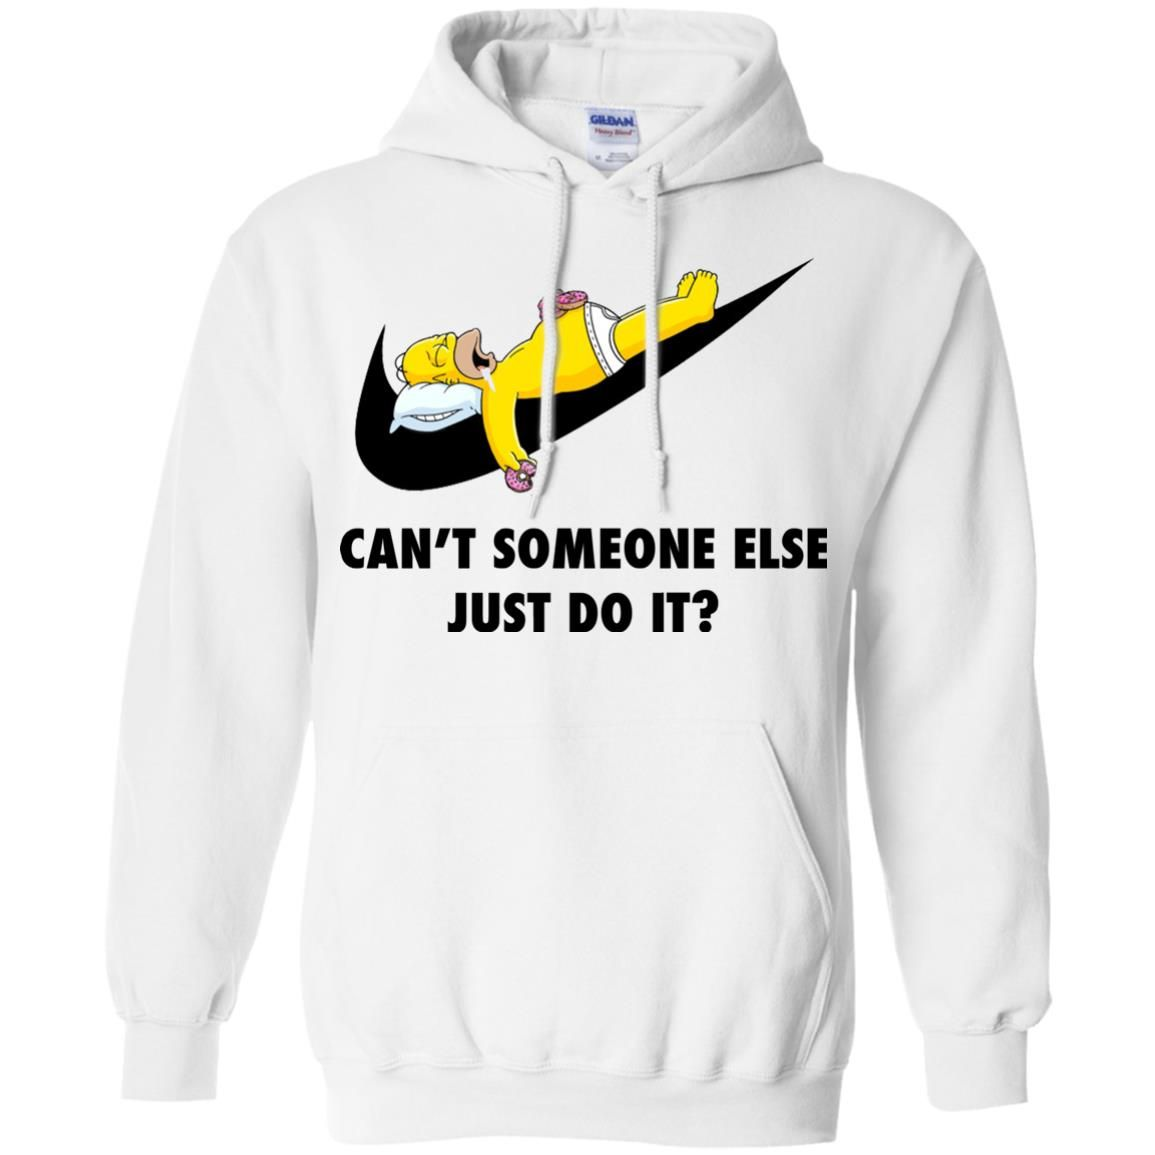 image 1407 - The Simpsons: Can't someone eles just do it shirt, tank, hoodie